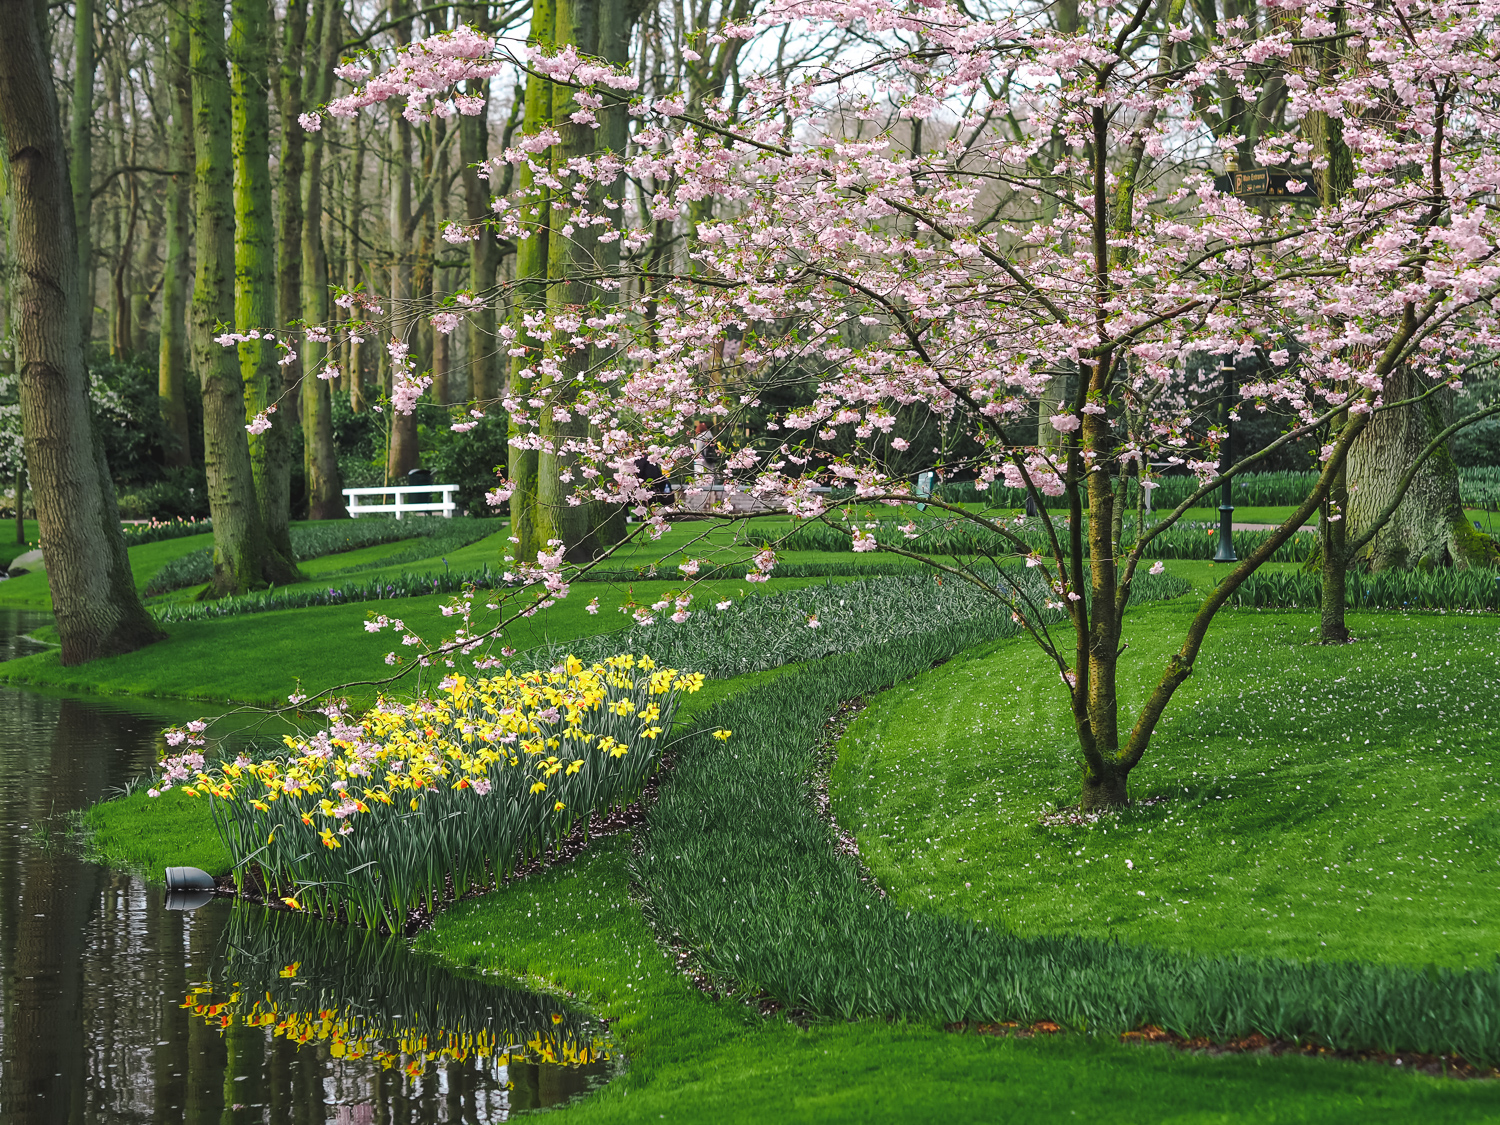 Visiting The Most Beautiful Garden in Europe Keukenhof